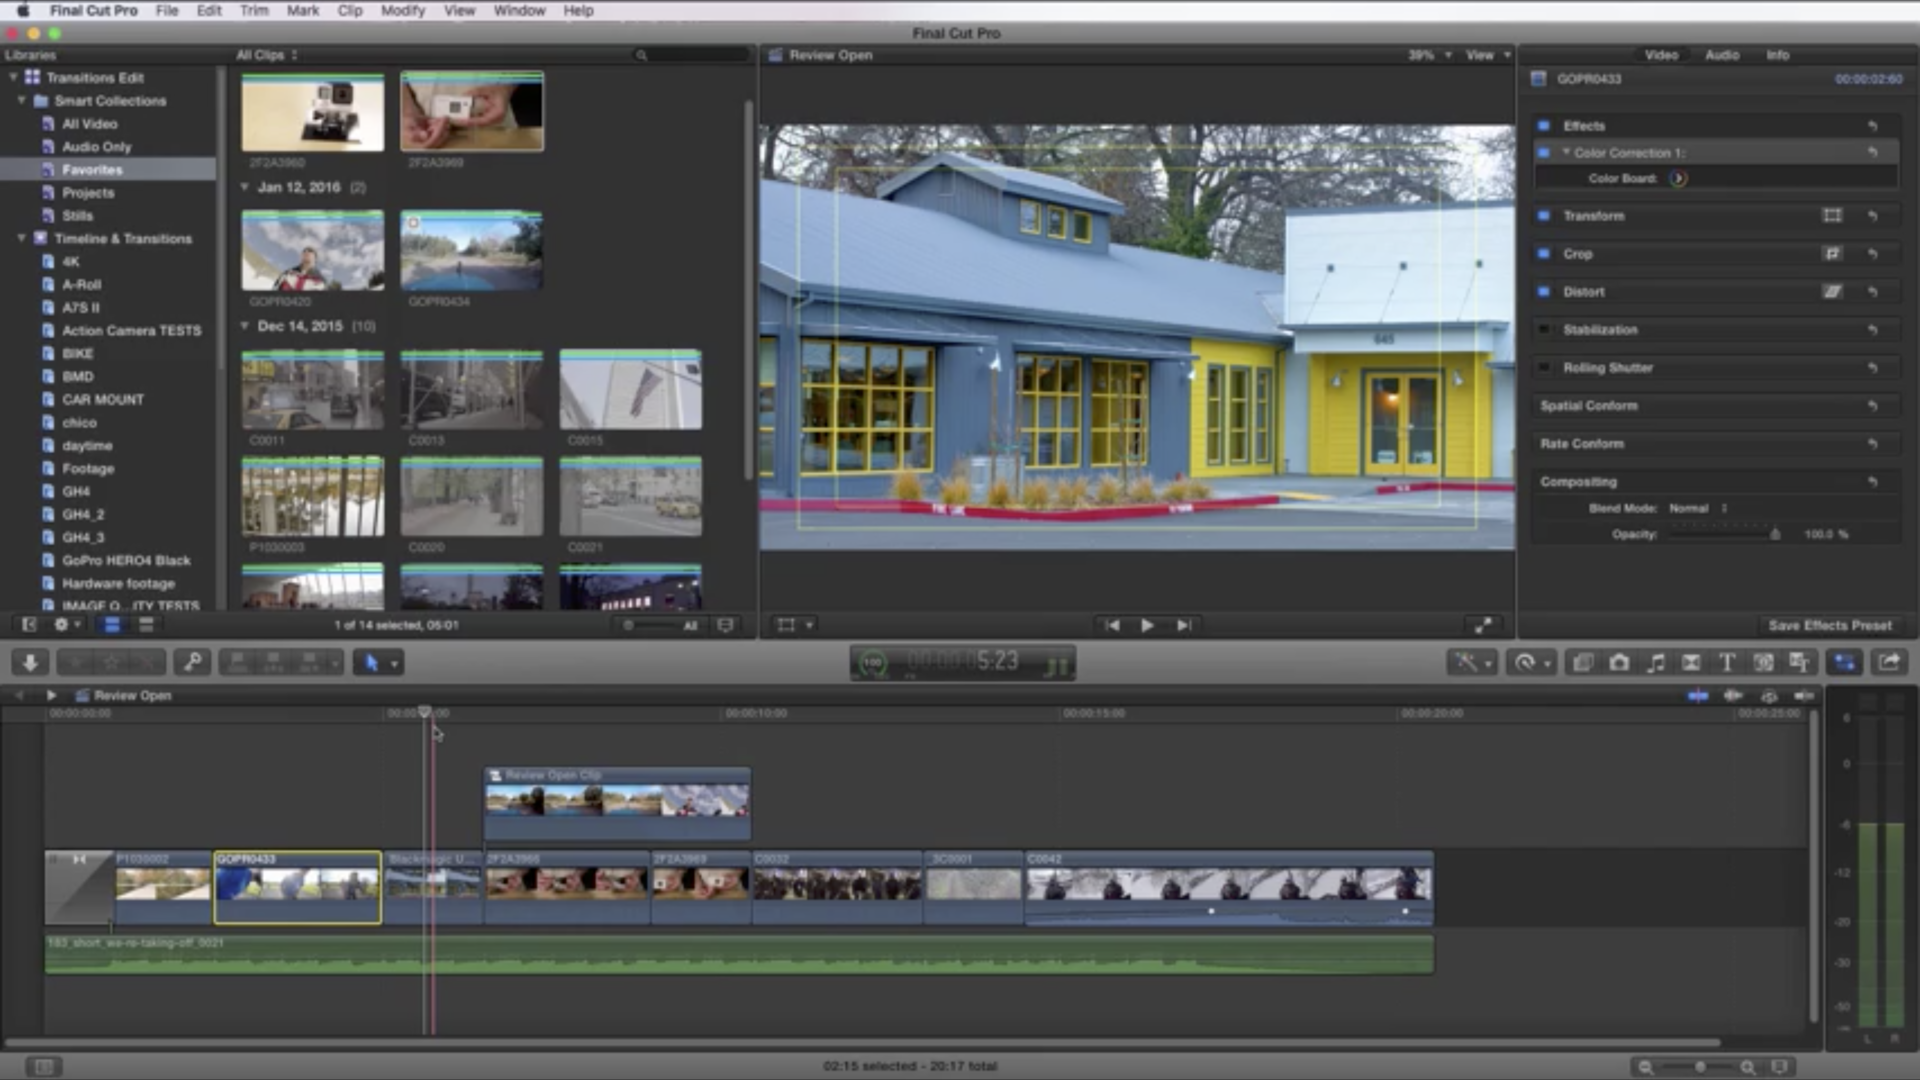 Final Cut Pro X Essentials - Working in the Timeline